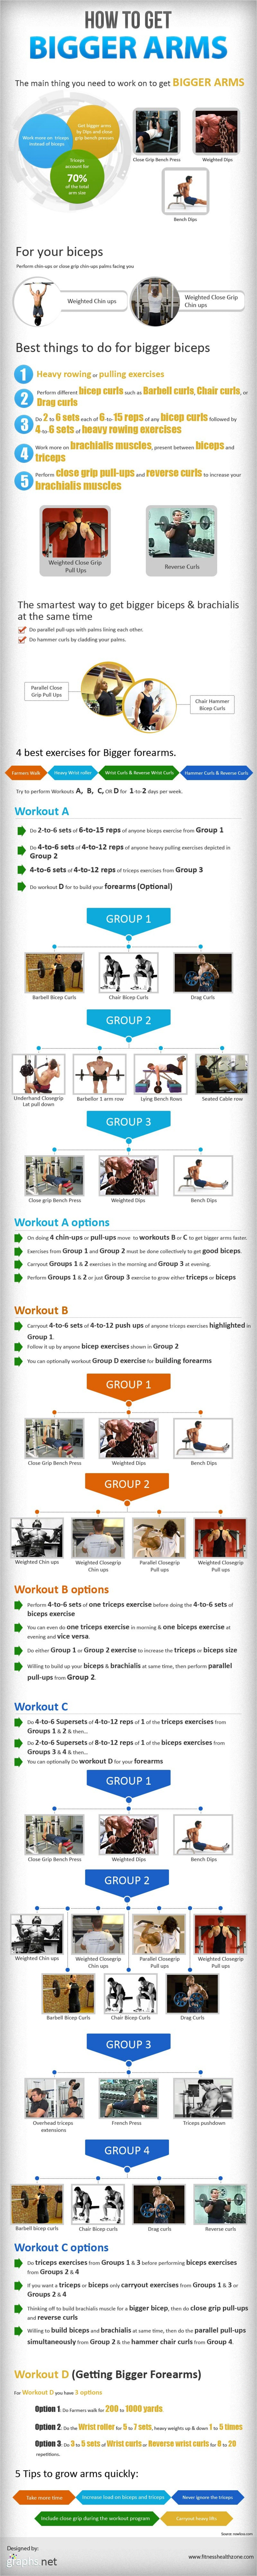 how to grow bigger arms infographics